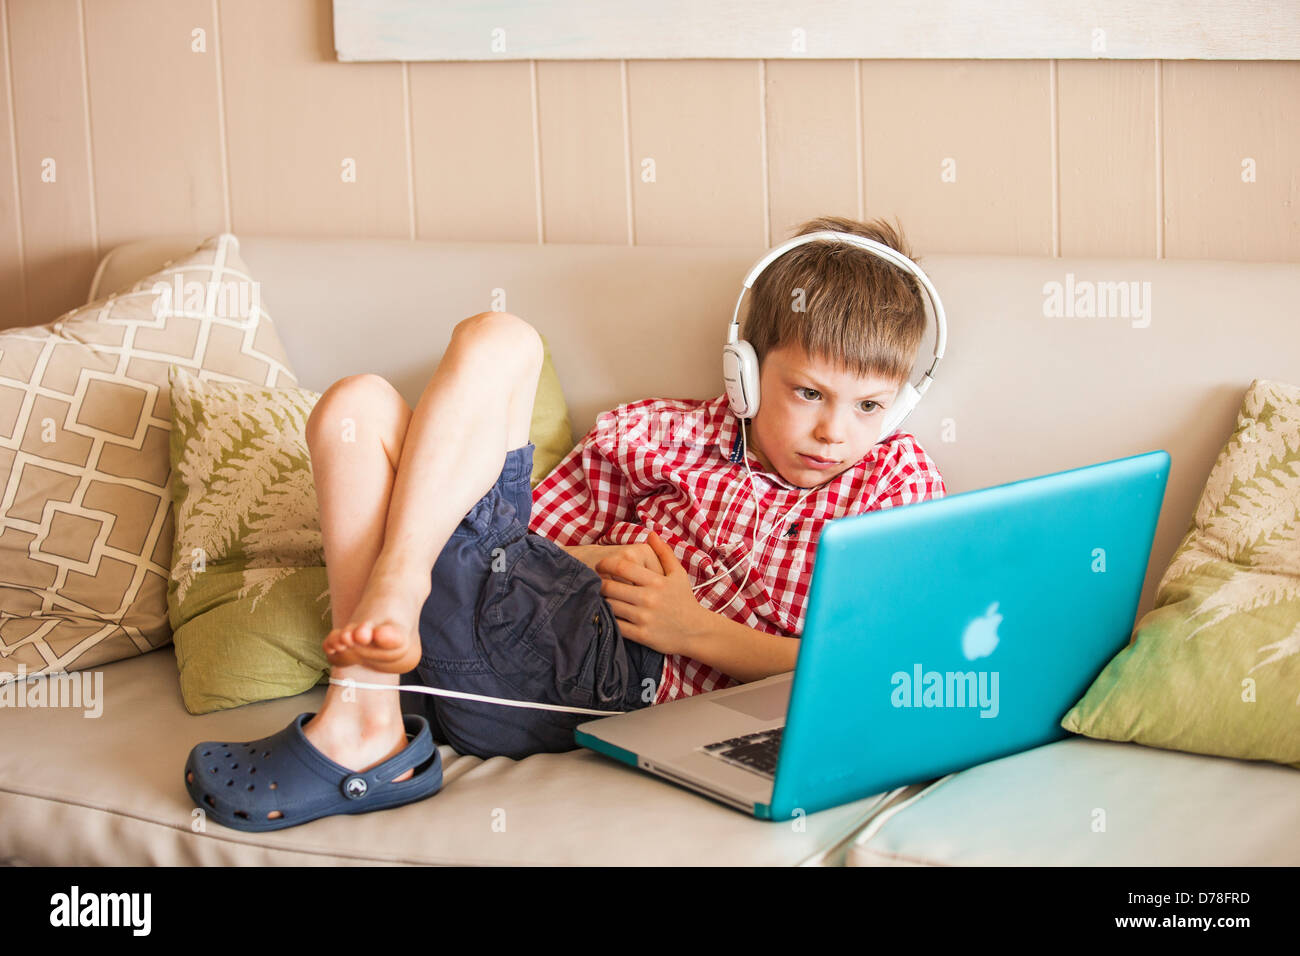 boy using laptop and headphones - Stock Image